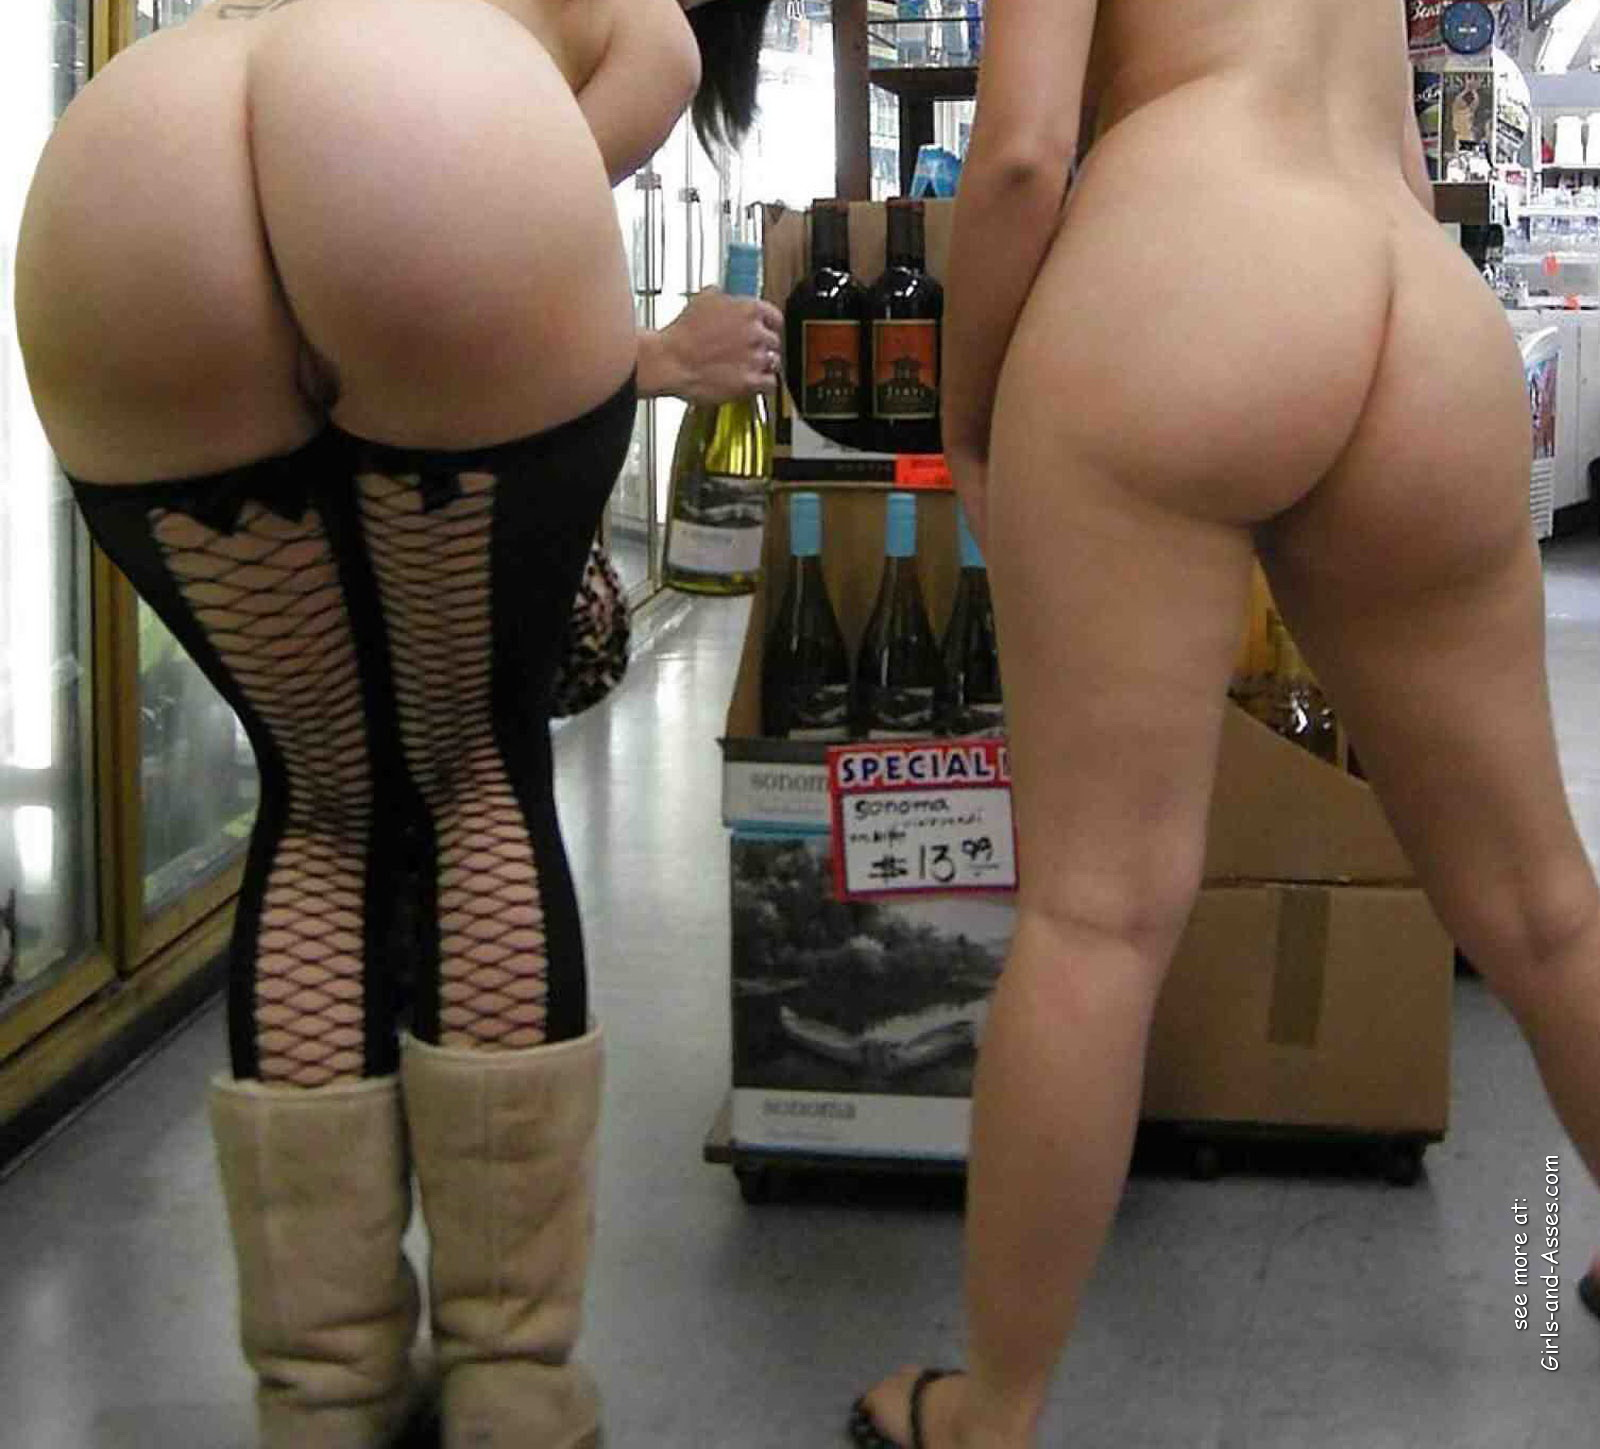 Girls Showing Ass Naked